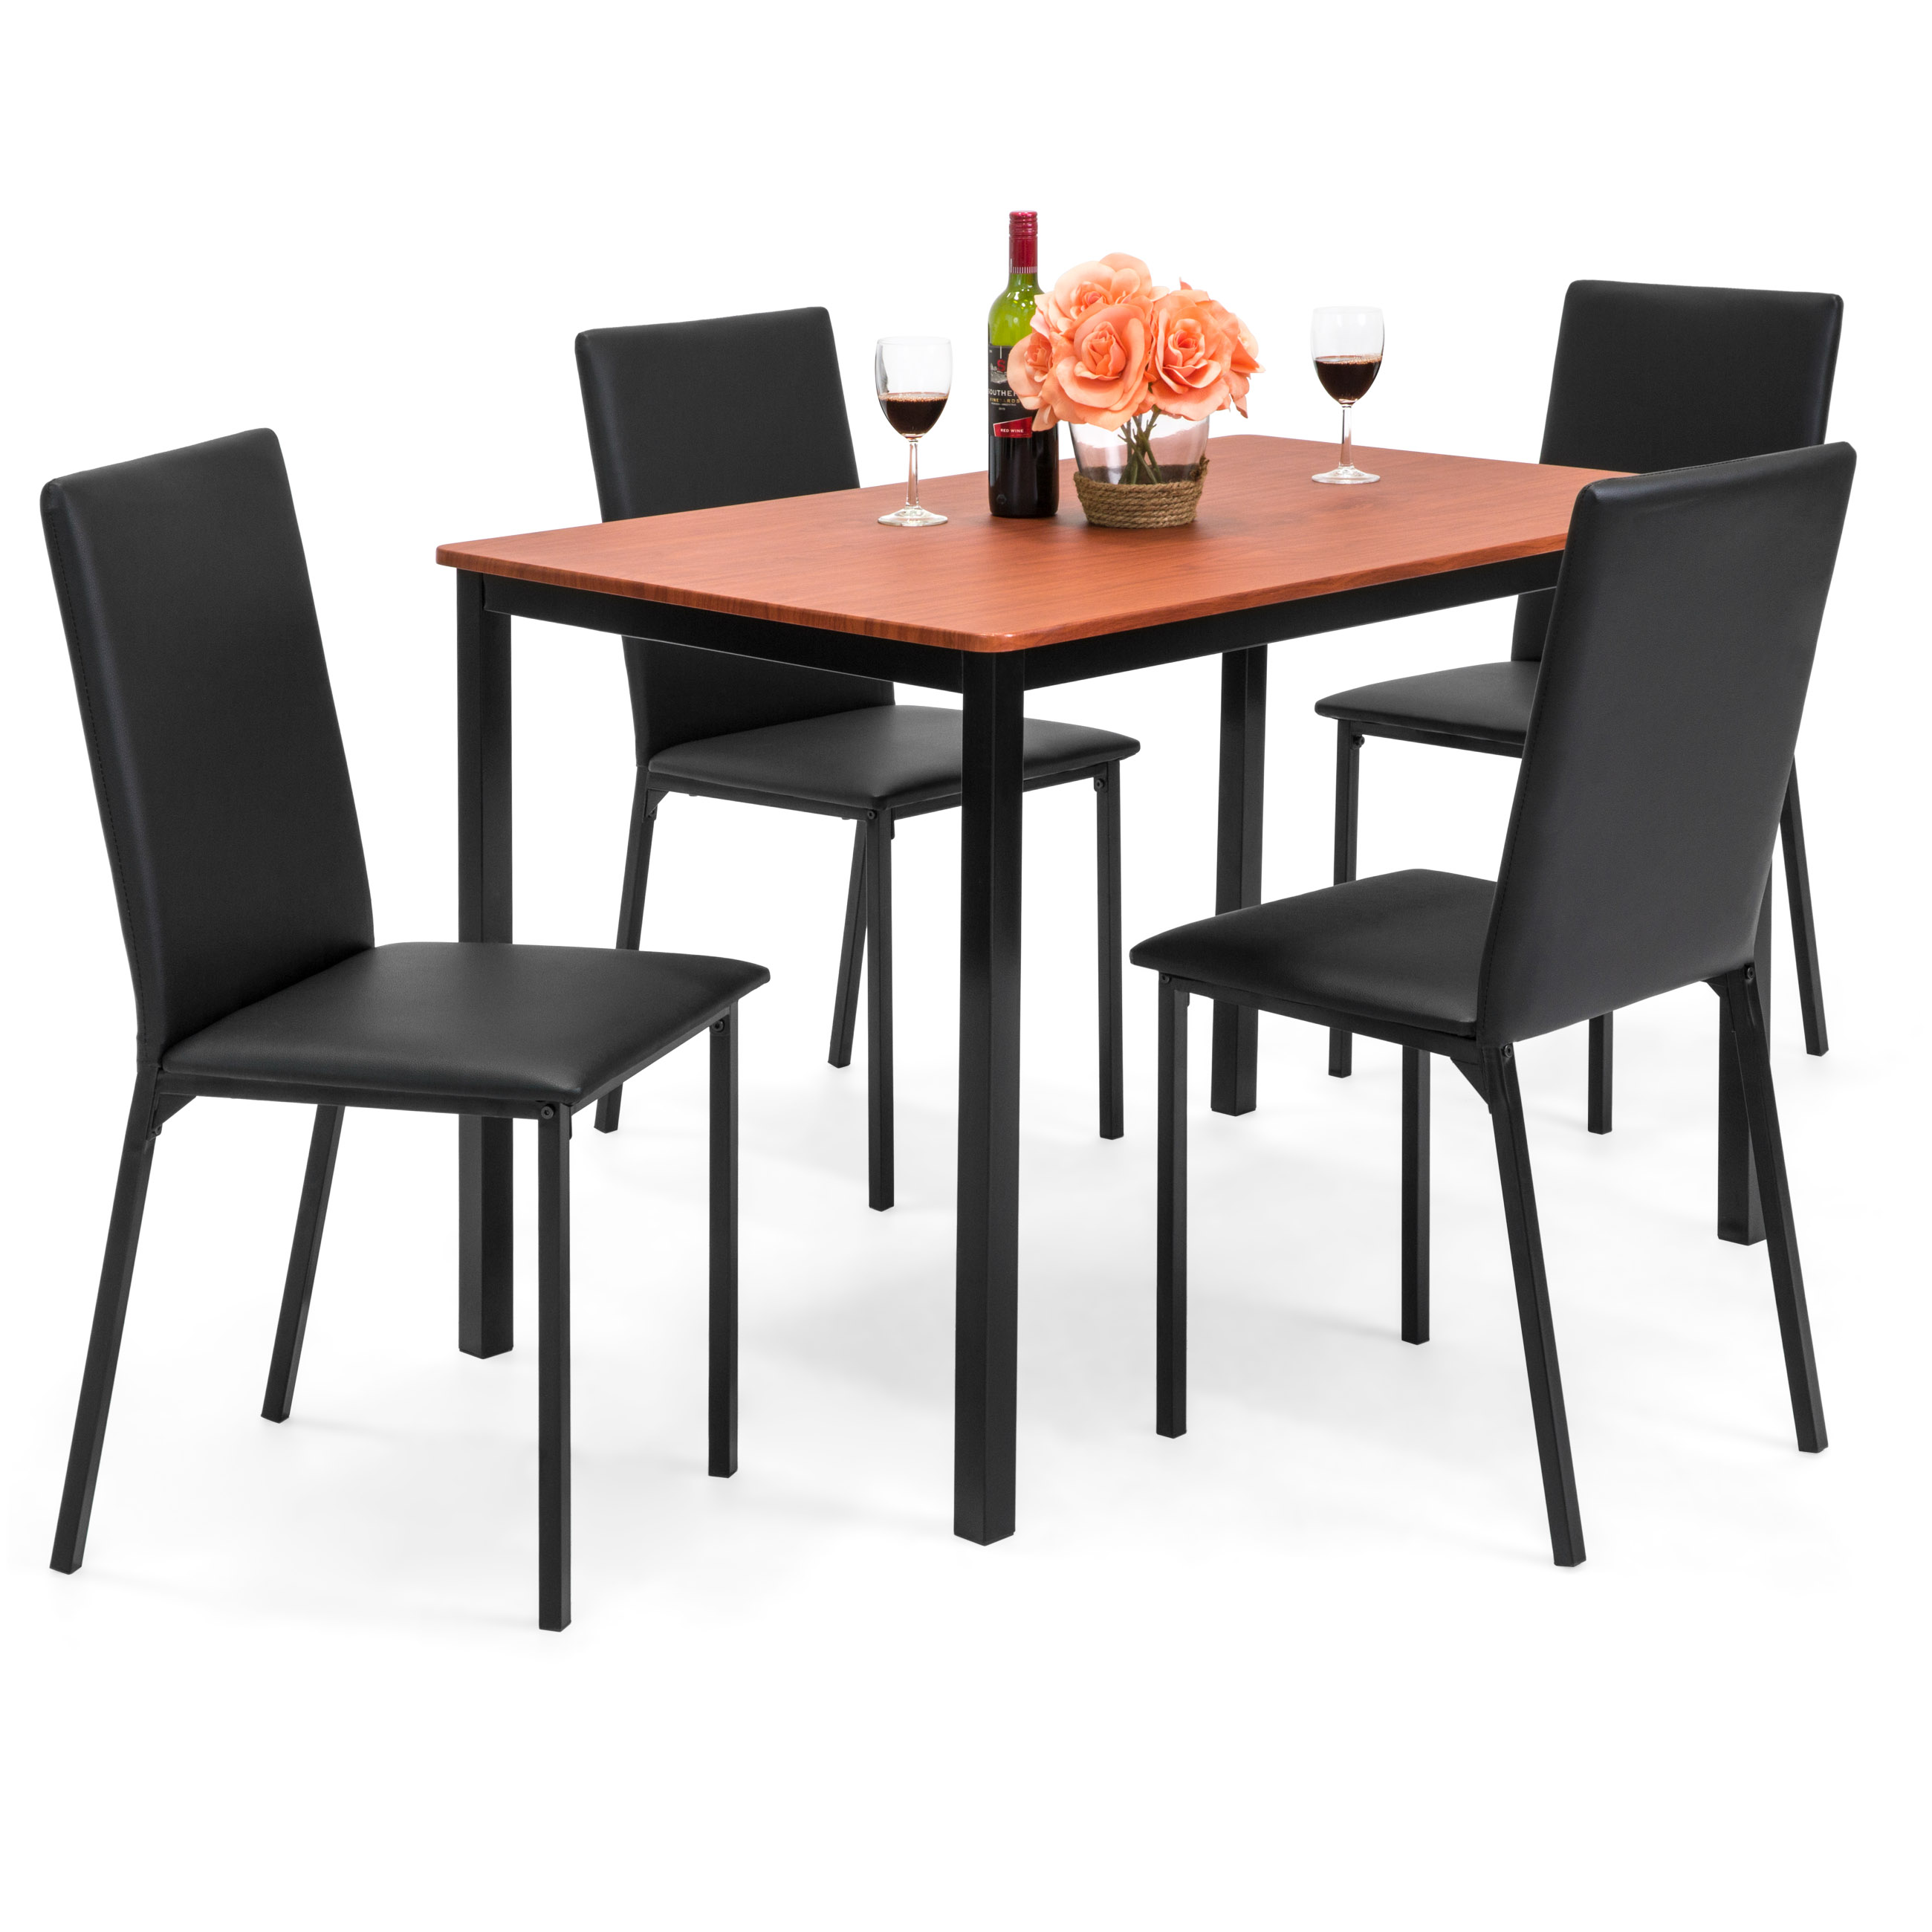 Best Choice Products 5-Piece Rectangle Dining Table Home Furniture Set w  4 Faux Leather Chairs Black by Best Choice Products